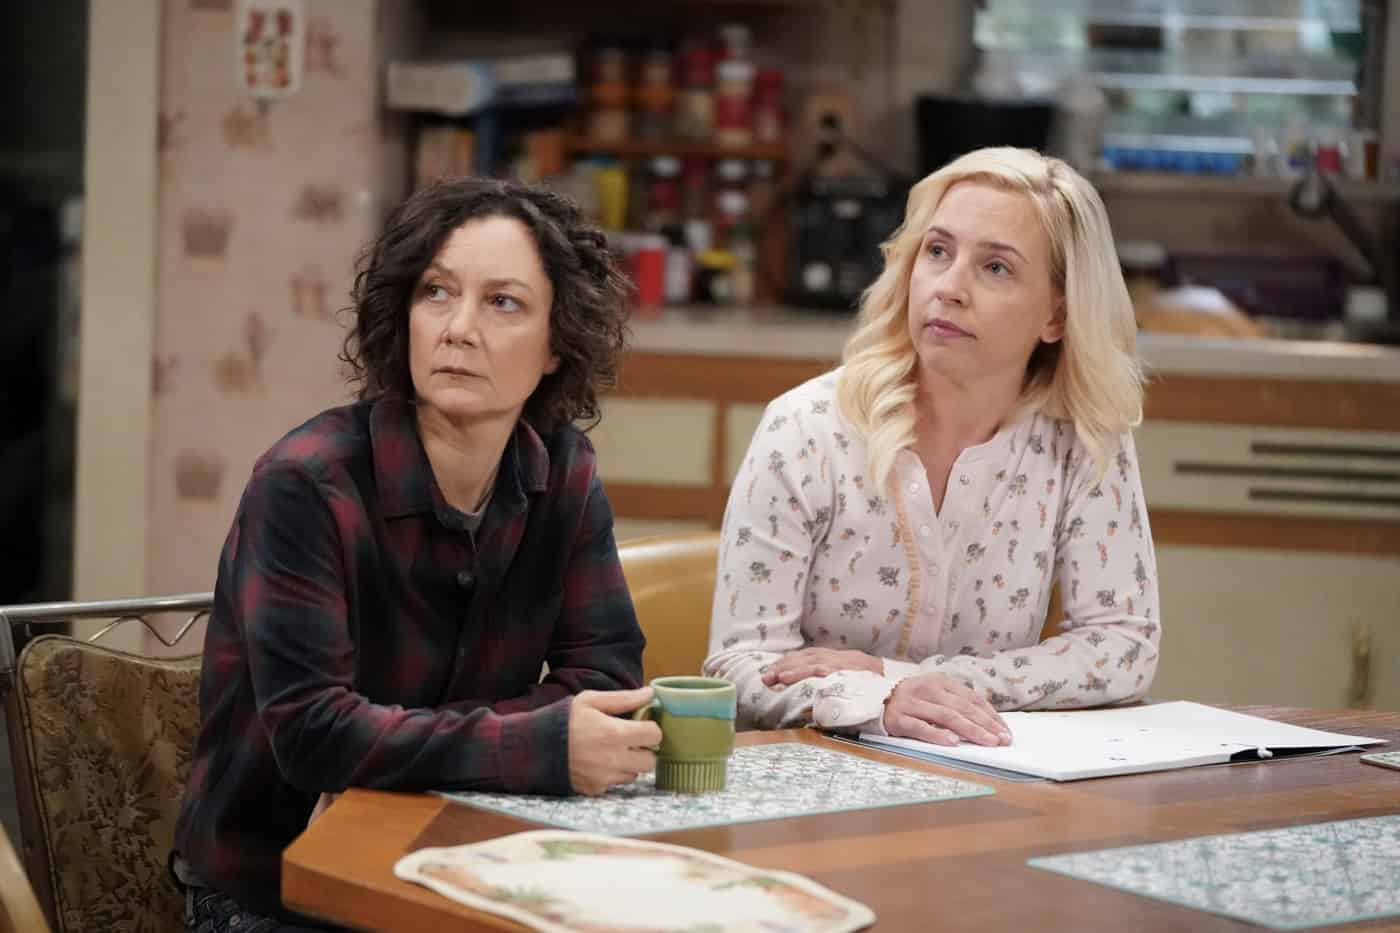 THE CONNERS Season 4 Episode 3 Photos Sober Sex, Plastic Silverware, And Losing My Religion